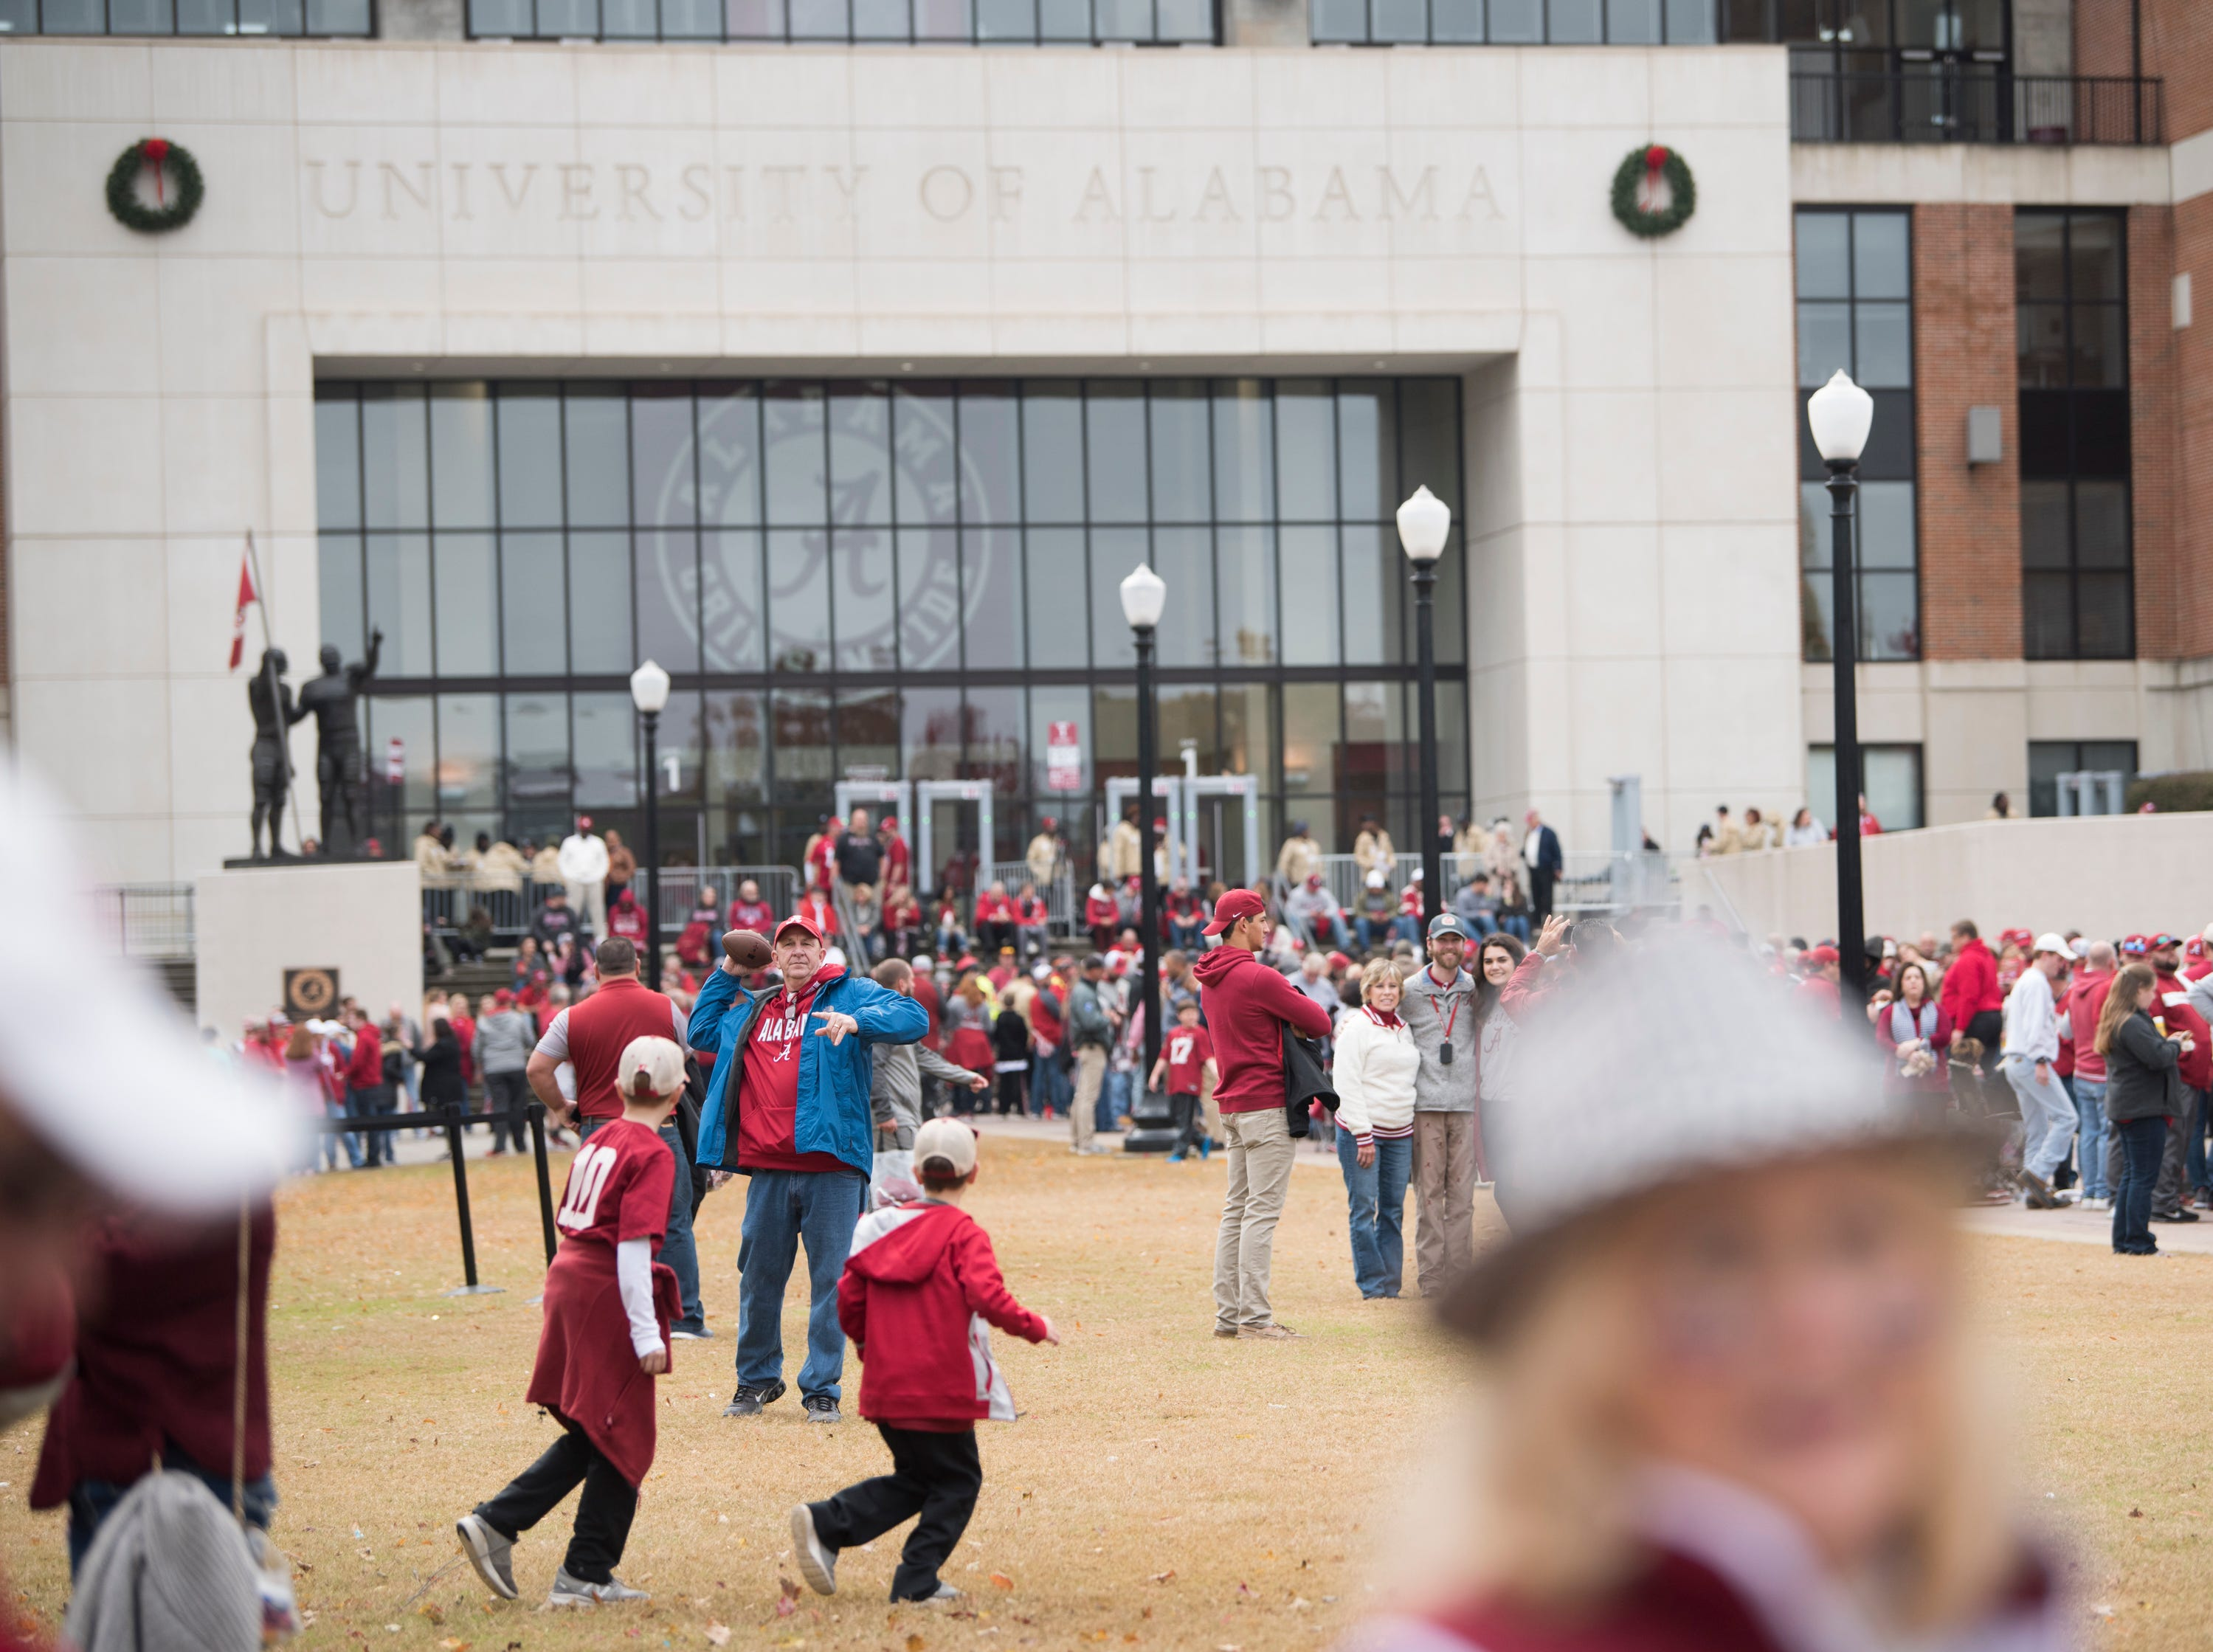 Fans play with a football outside Bryant-Denny Stadium in Tuscaloosa, Ala., on Saturday, Nov. 24, 2018.